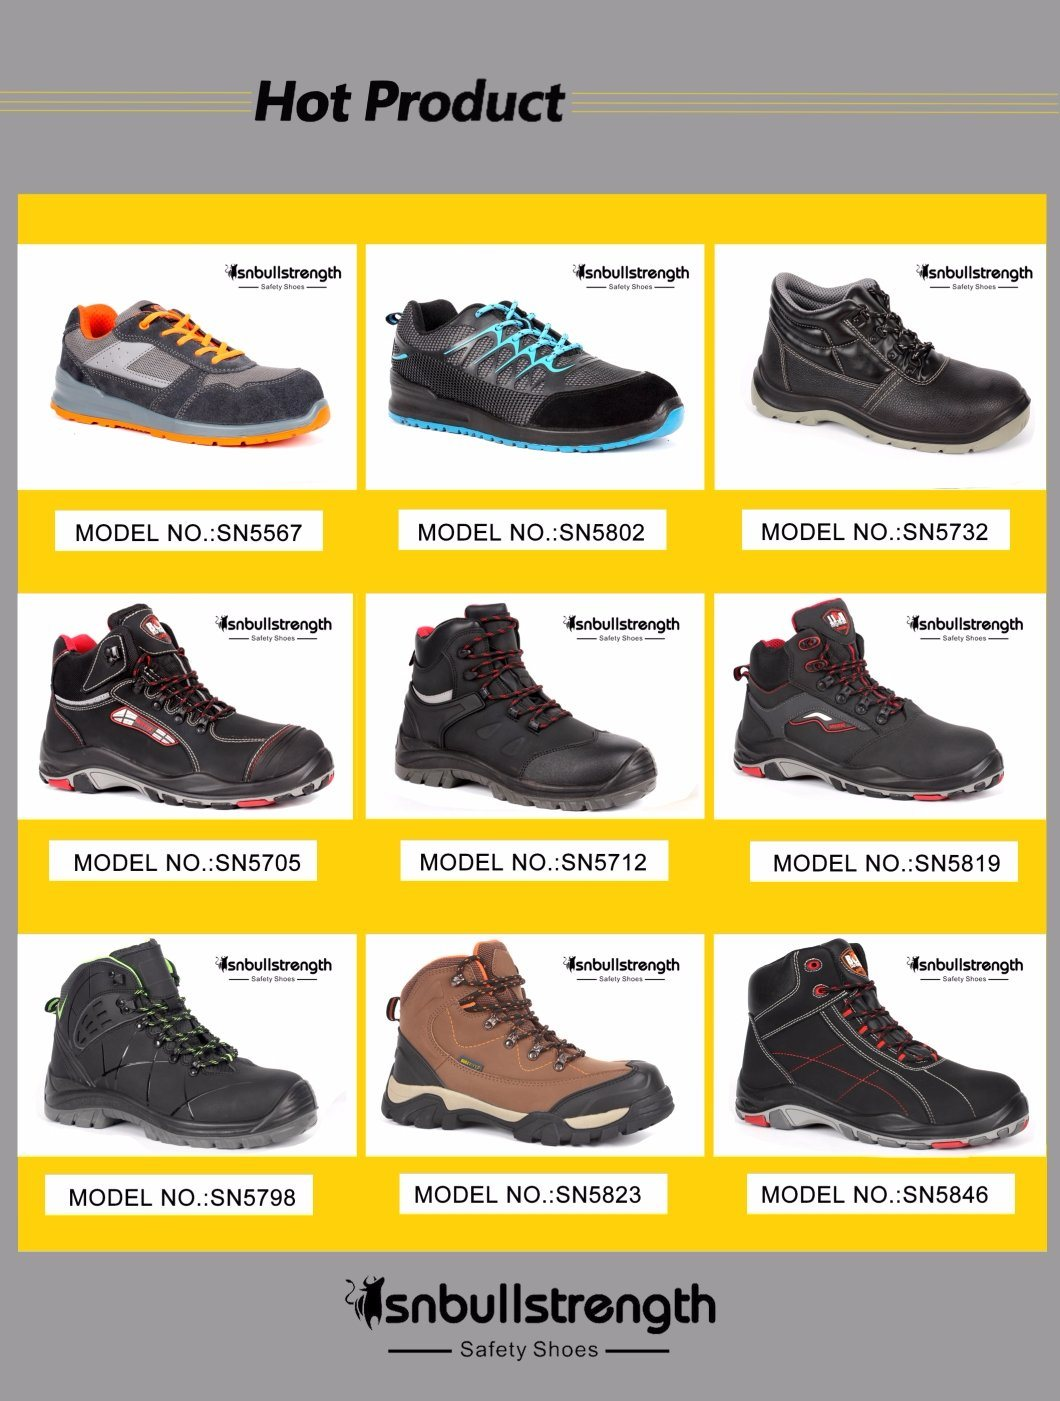 Men Shoes Black Cow Suede Leather Safety Shoes Industrial Security Working Footwear with Steel Toe Cap Factory Price High Quality China Sn5661